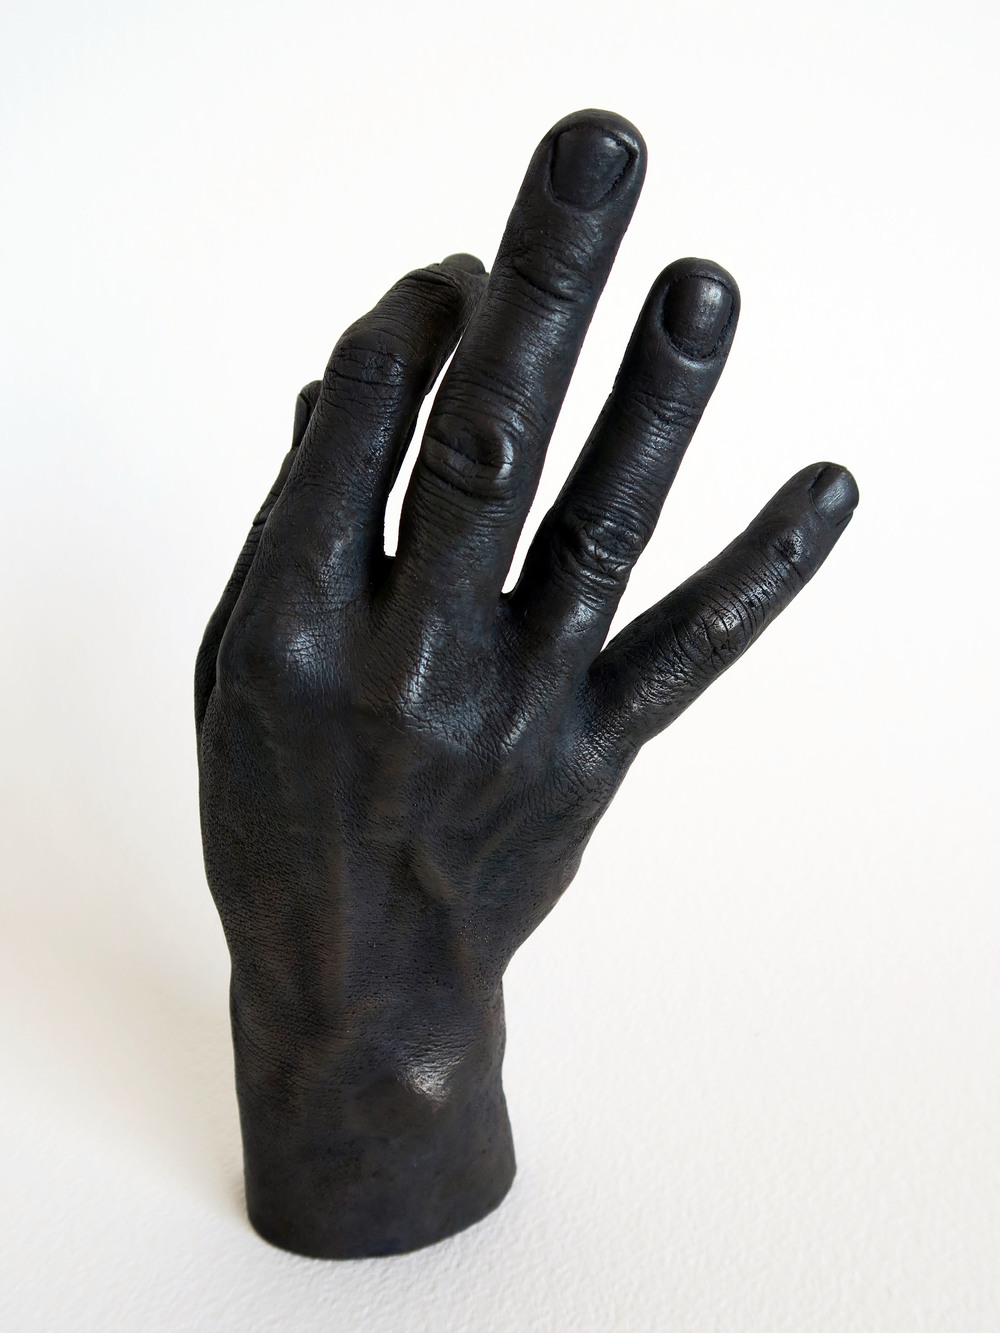 [IMAGE - Hand cast in bronze. Anna Mayer, We Are Not Only Anything]